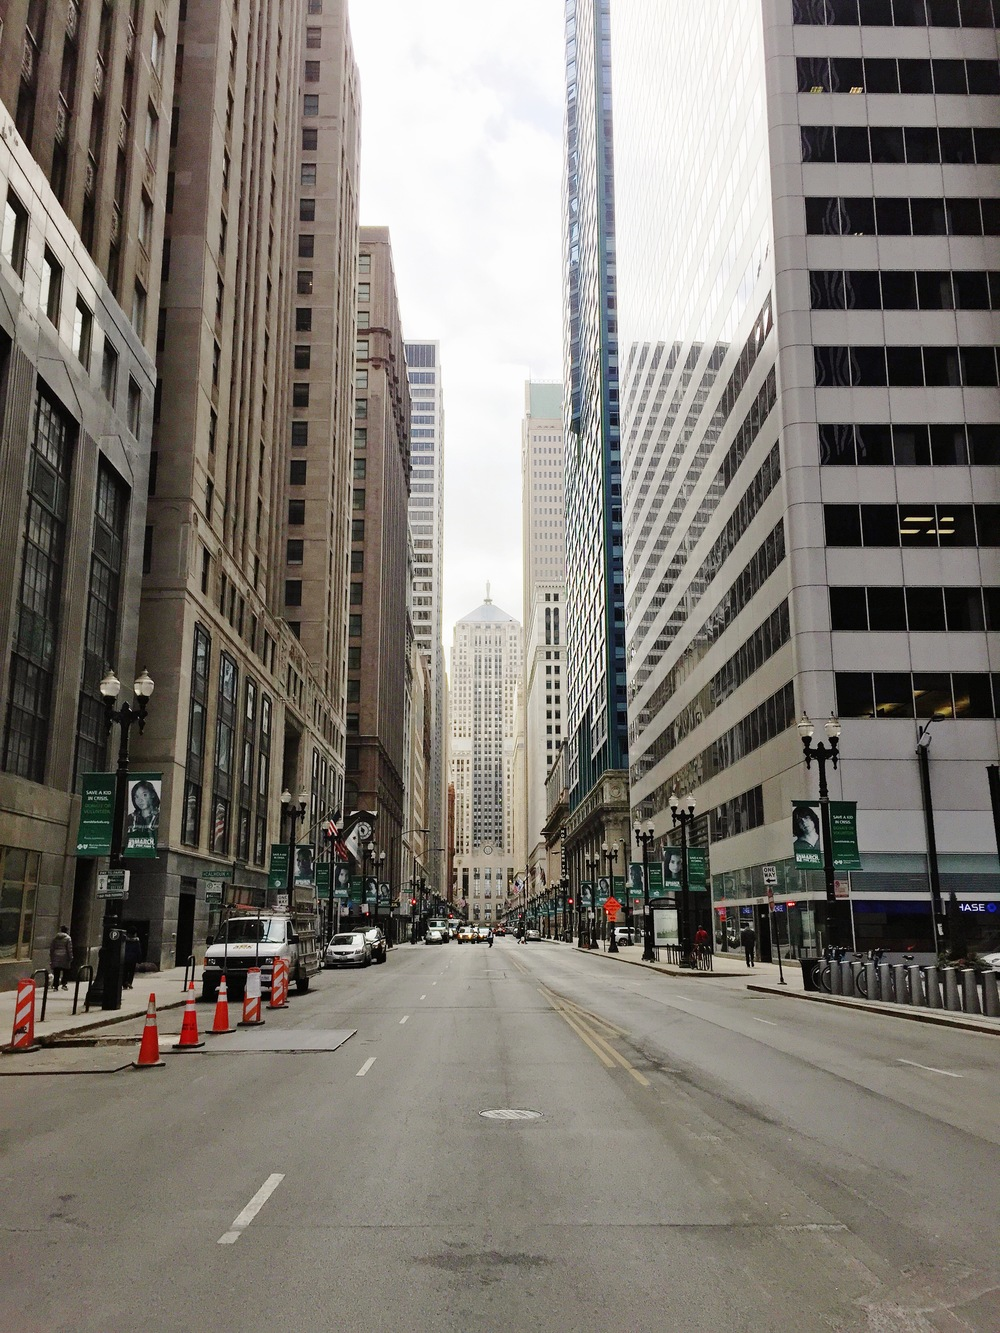 View of Chicago Board of Trade (CBOT), LaSalle and Washington